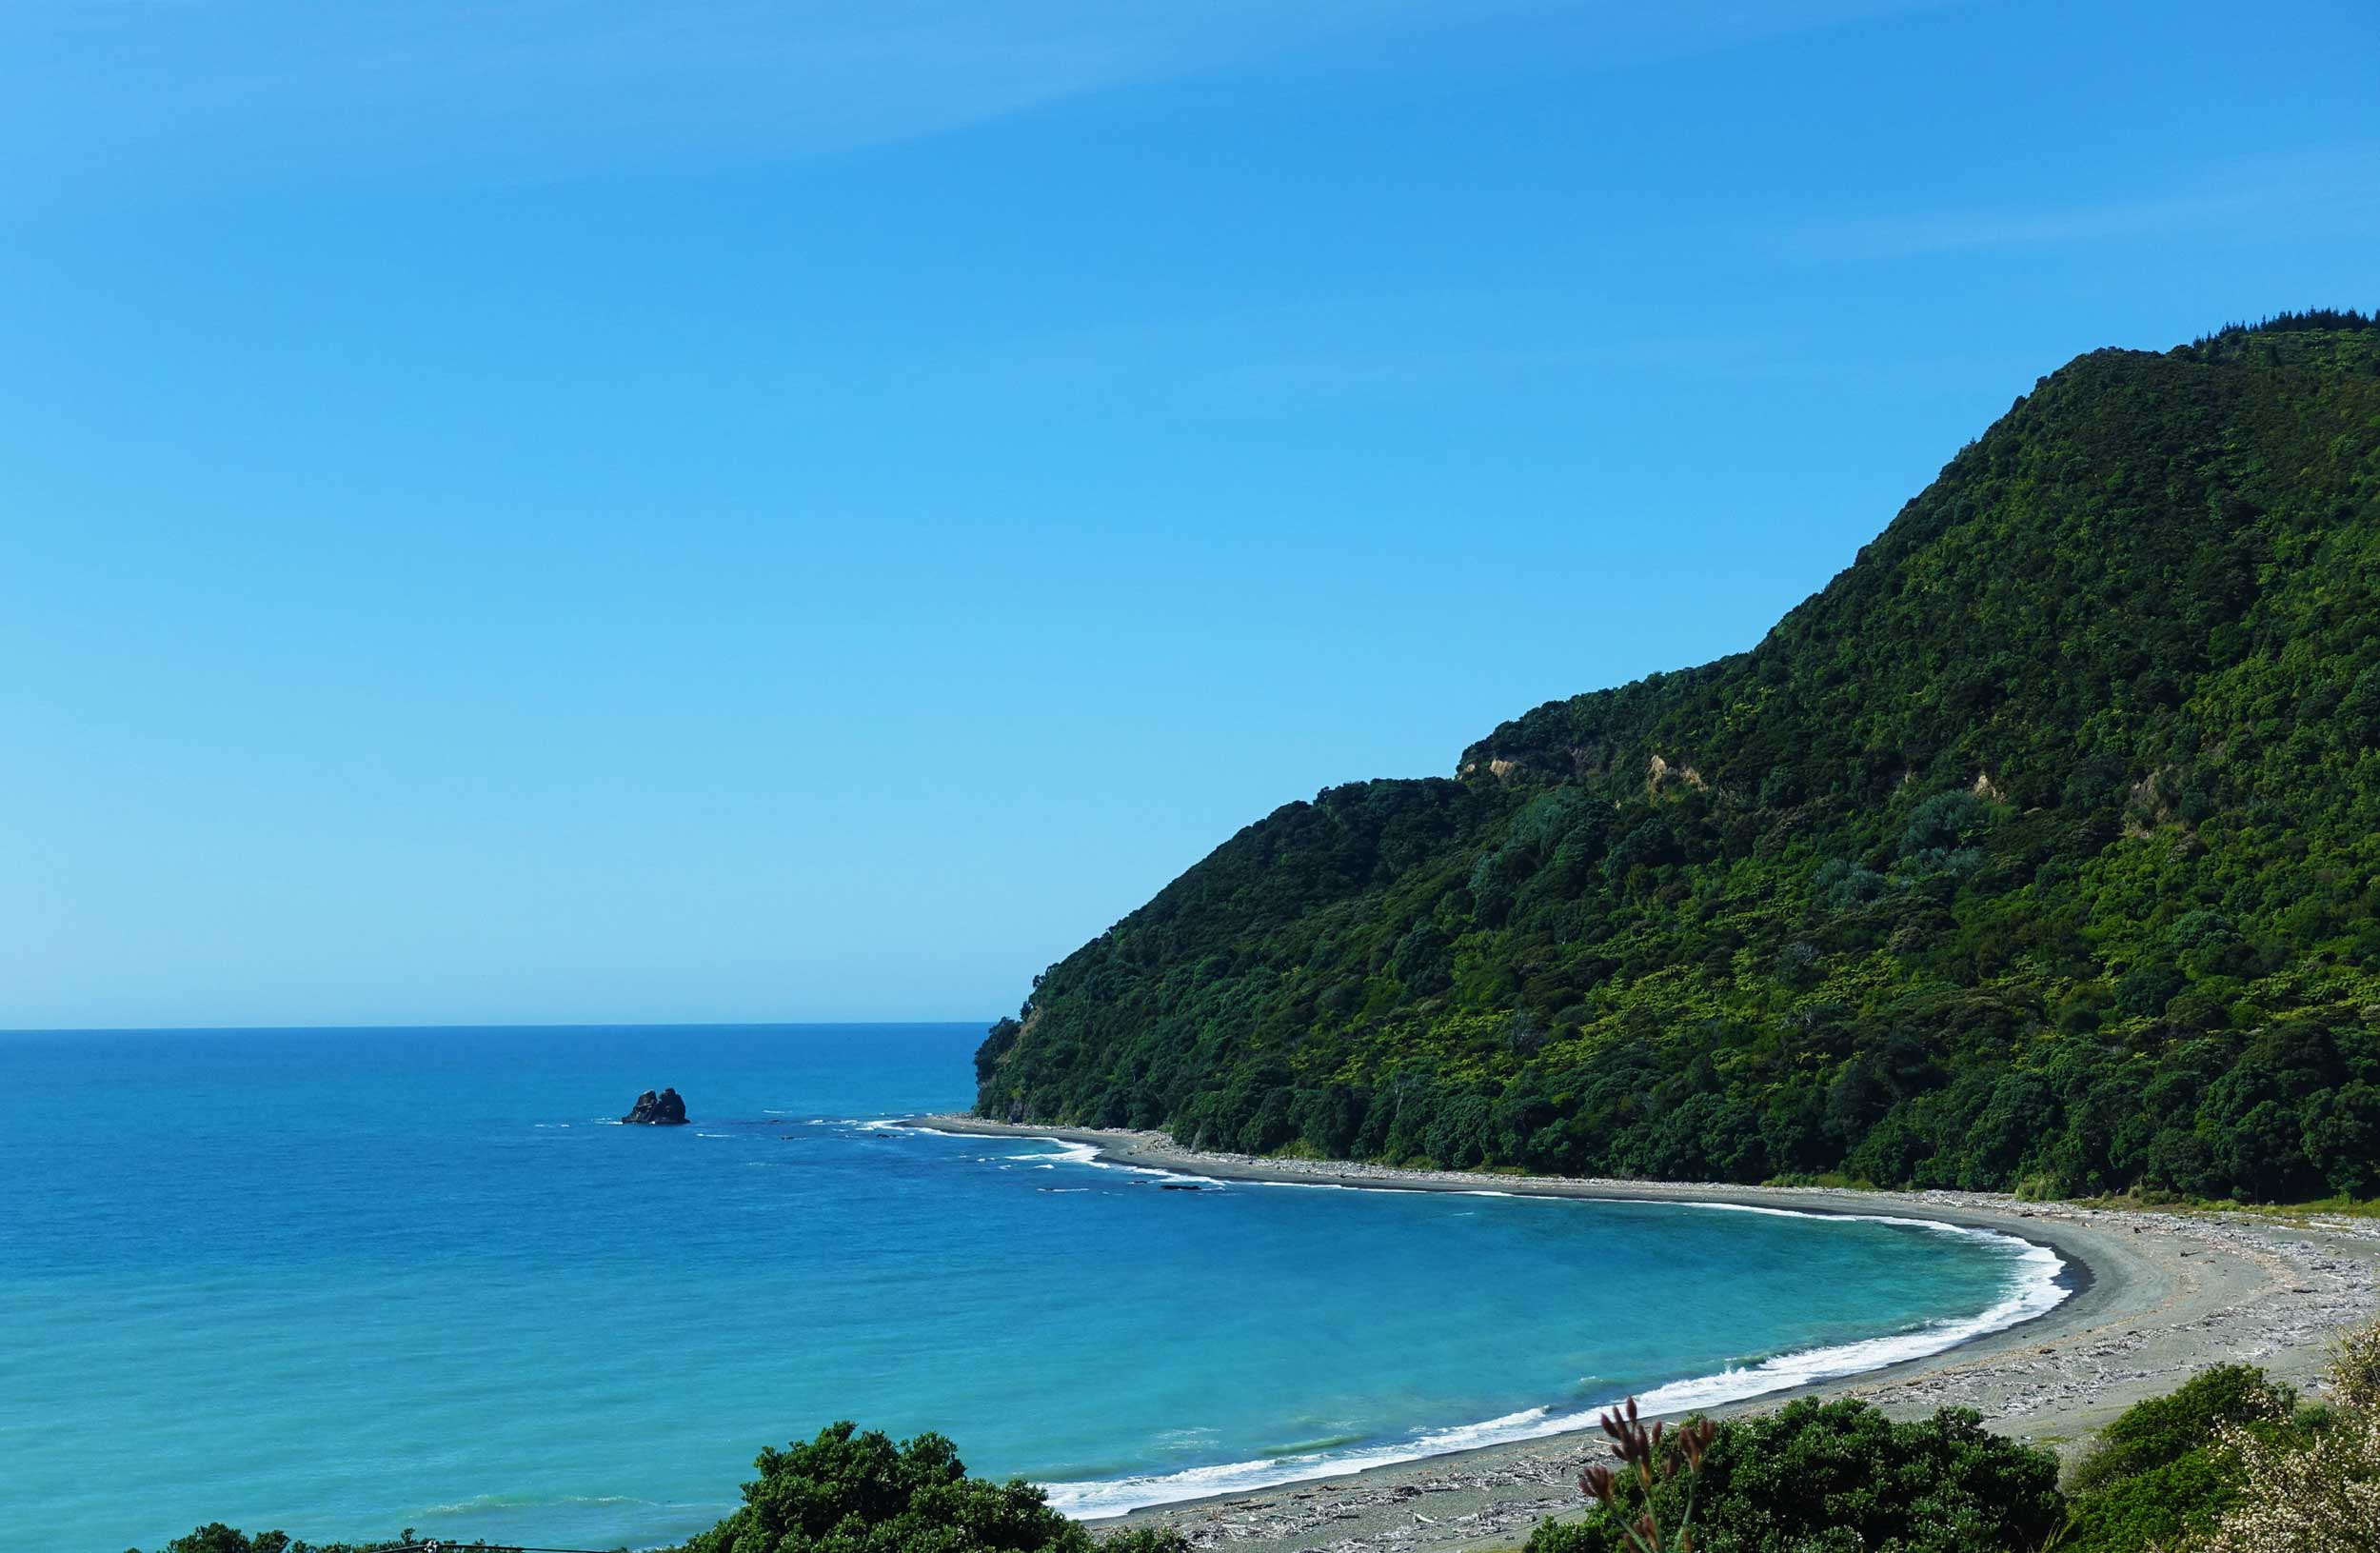 A view of a bay with a sandy beach at East Cape, New Zealand